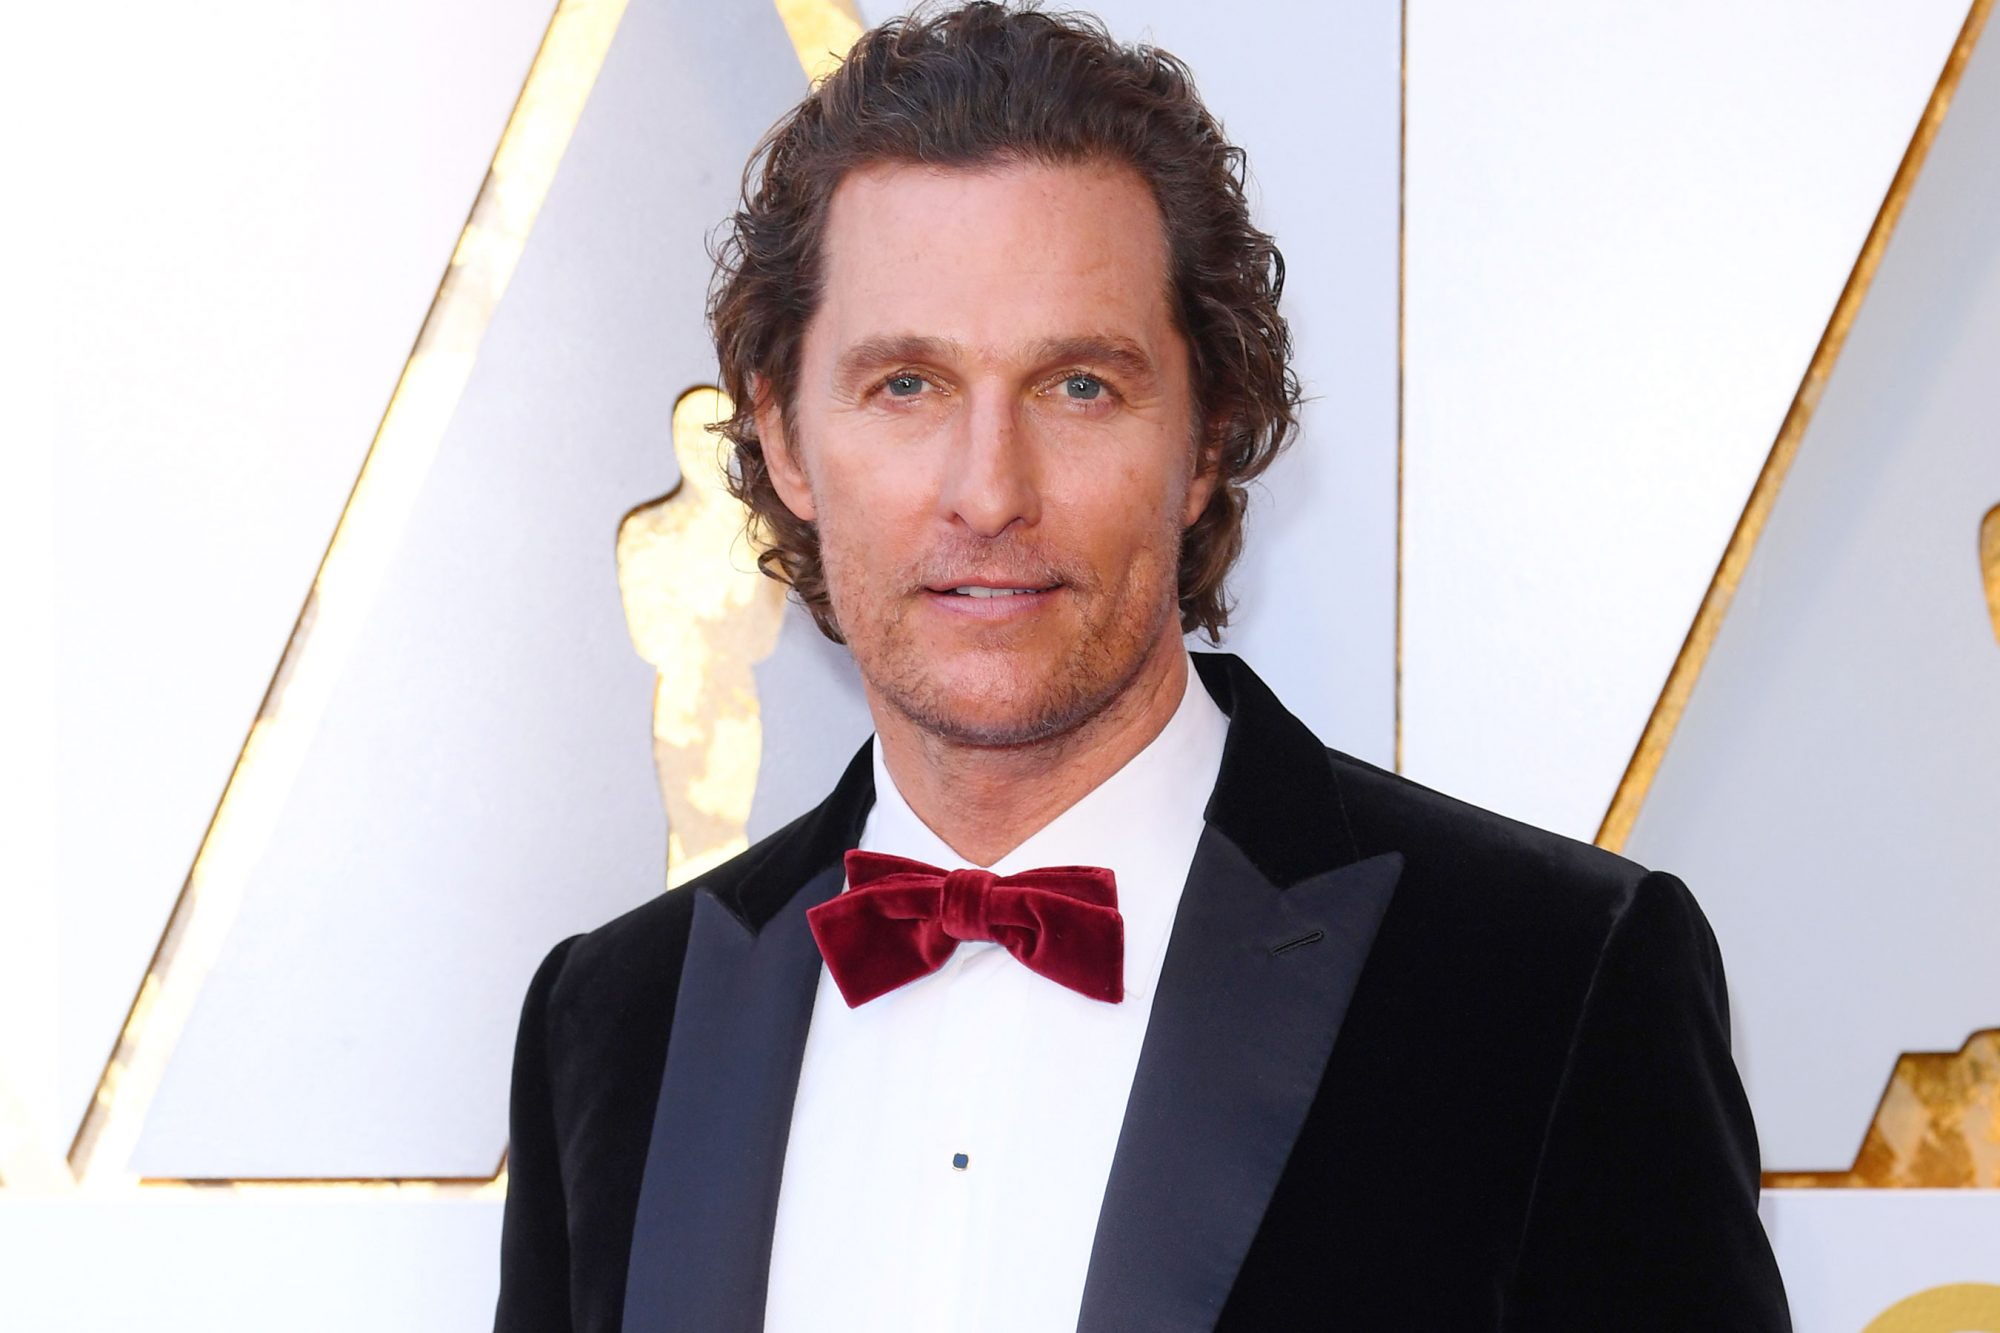 Matthew McConaughey auditioned to play Leonardo DiCaprio's role in 'Titanic'